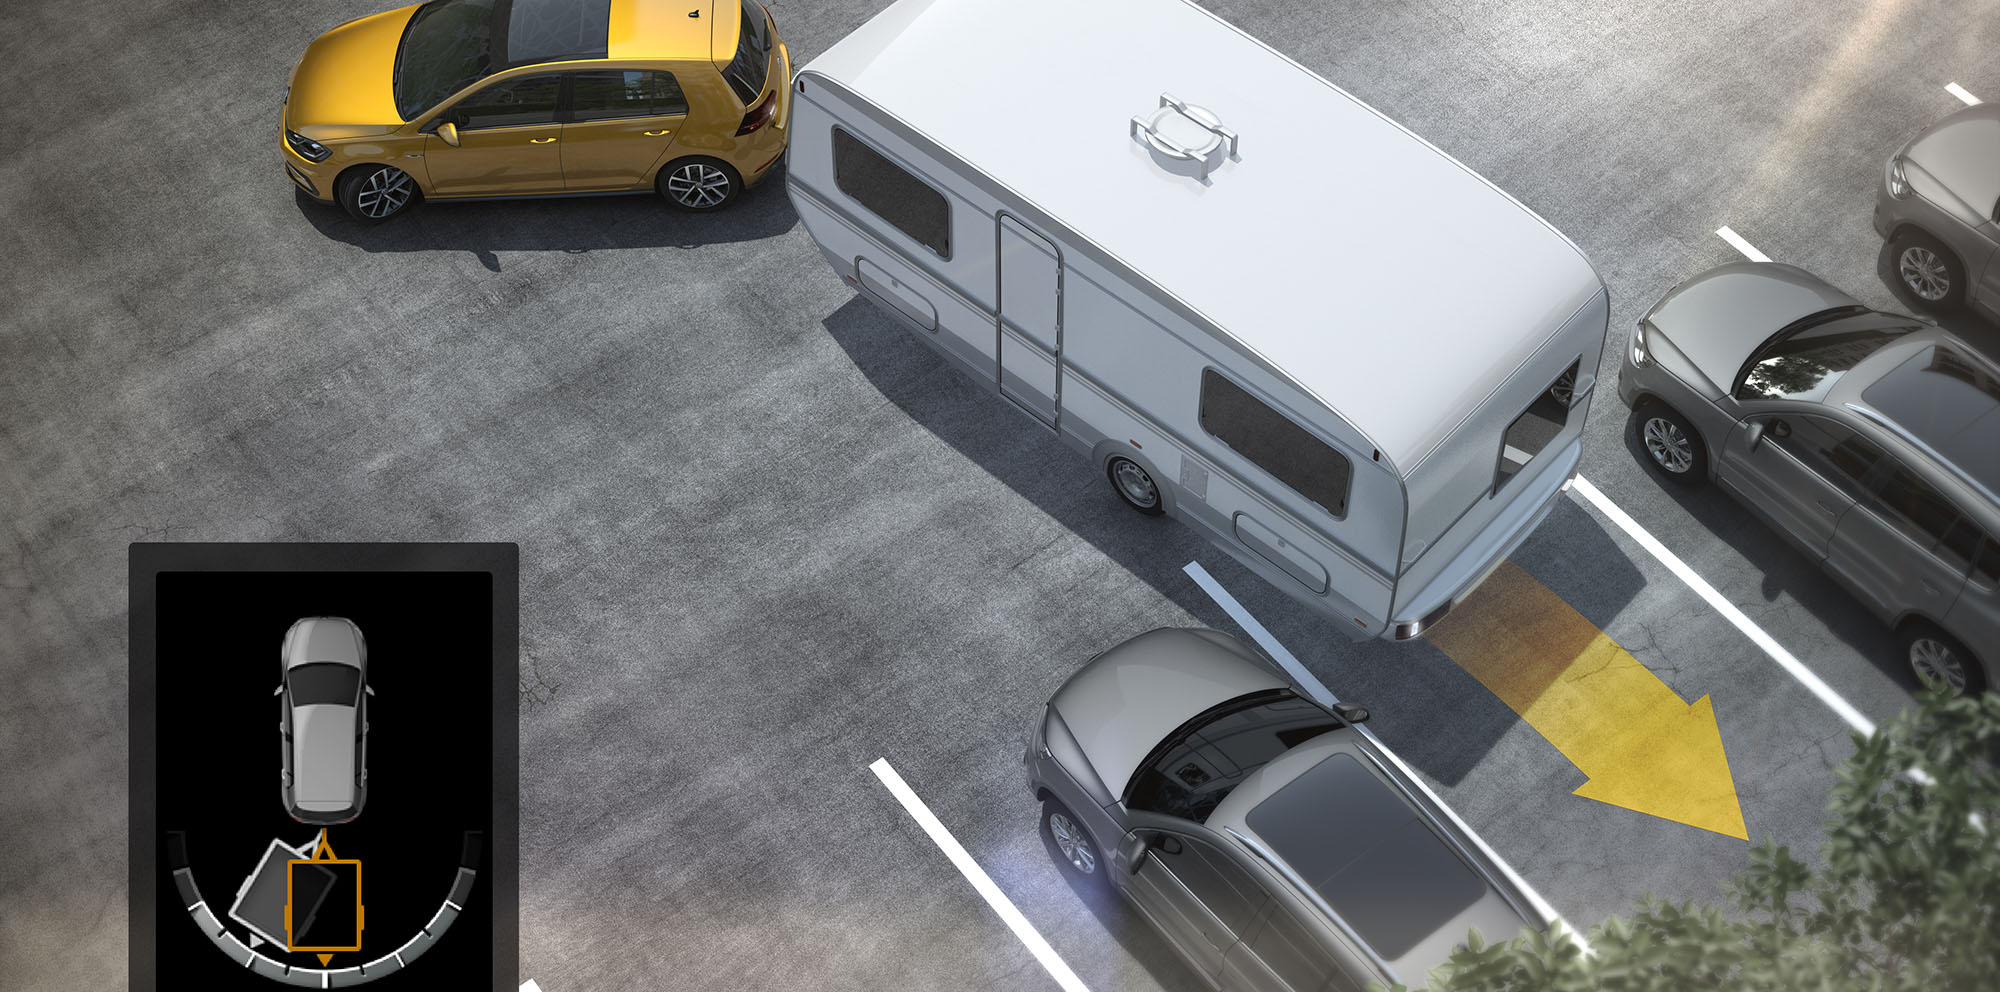 volkswagen-golf-trailer-assist